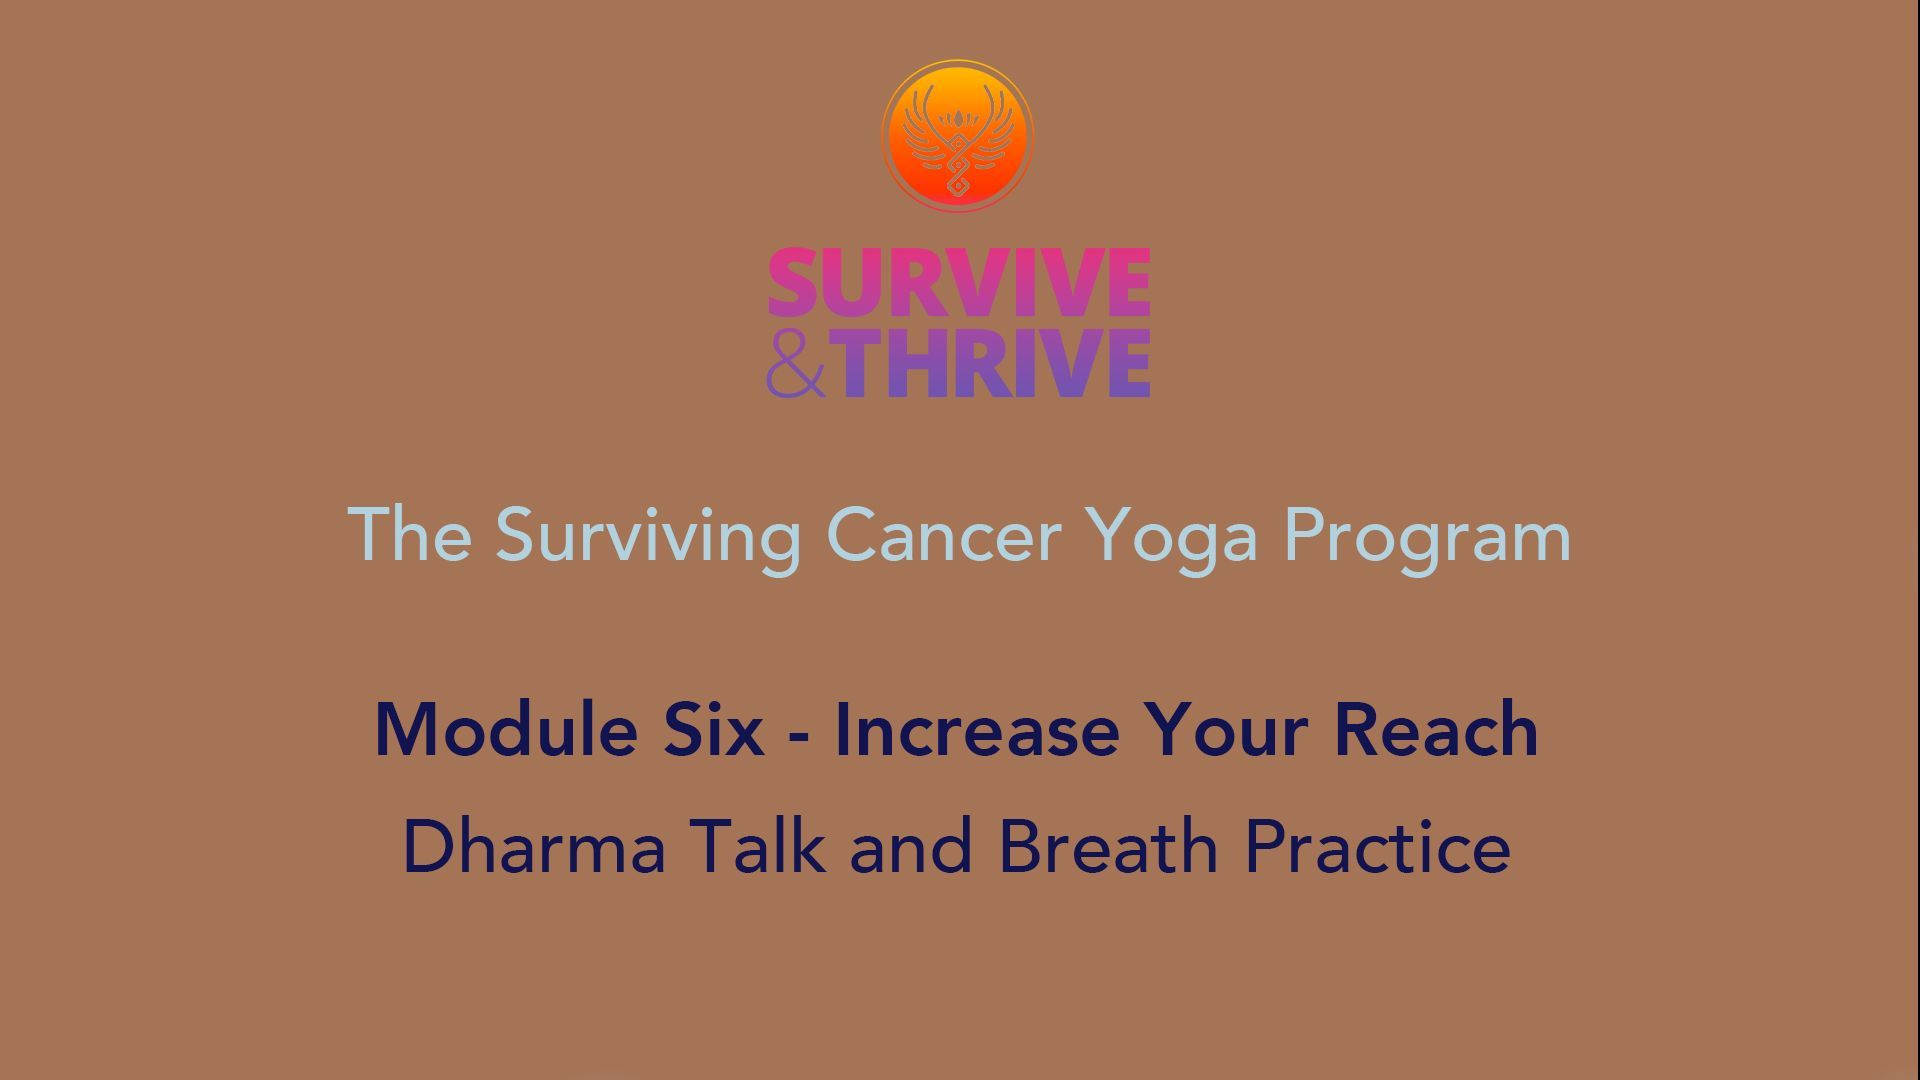 SURVIVE AND THRIVE | MODULE 6 - INCREASE YOUR REACH | DHARMA TALK